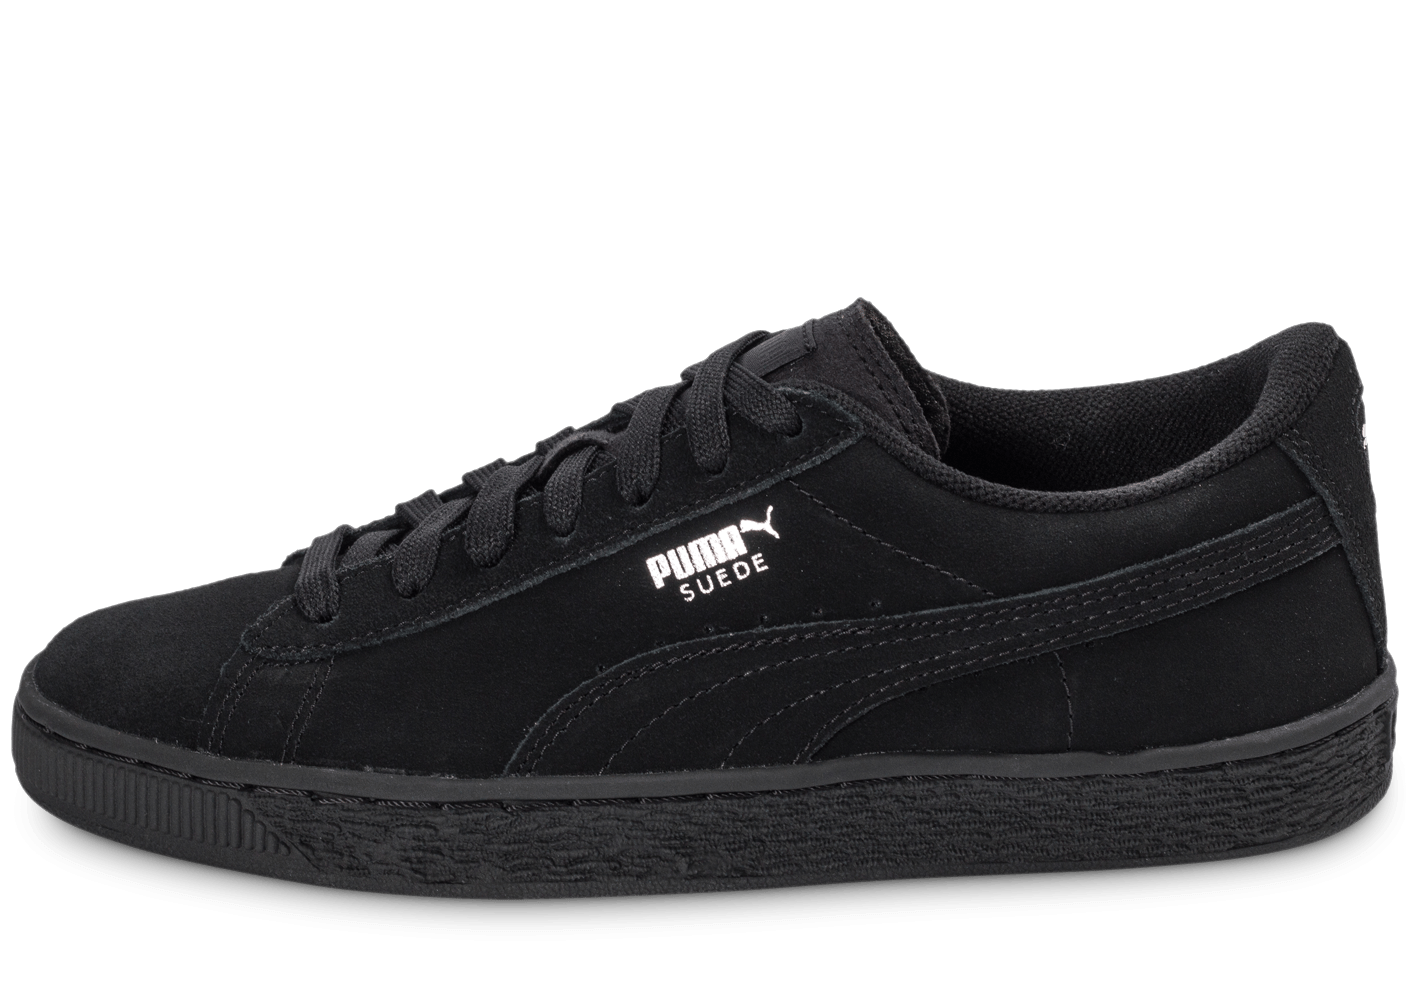 puma suede classic junior noire chaussures black friday. Black Bedroom Furniture Sets. Home Design Ideas